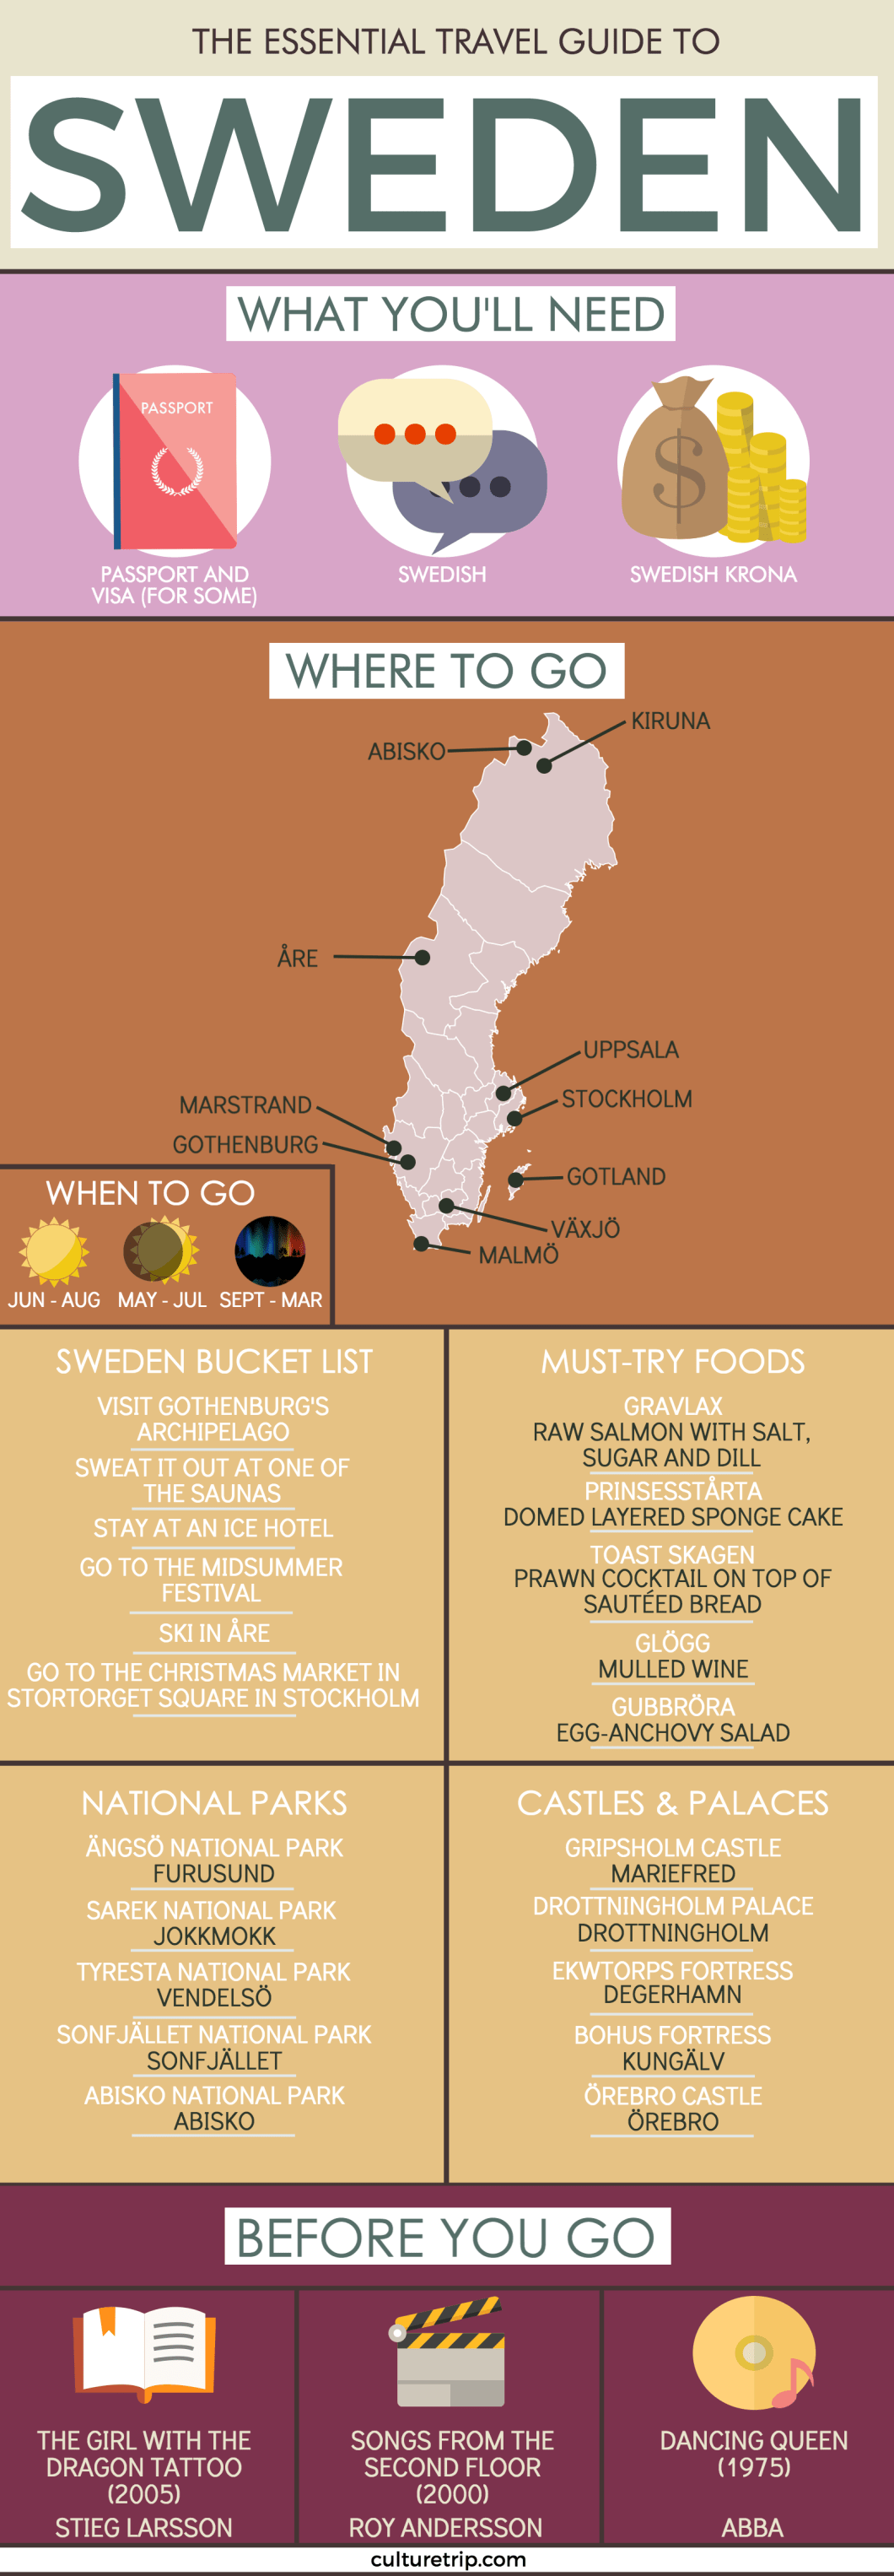 A Complete Travel Guide To Sweden - Infographic